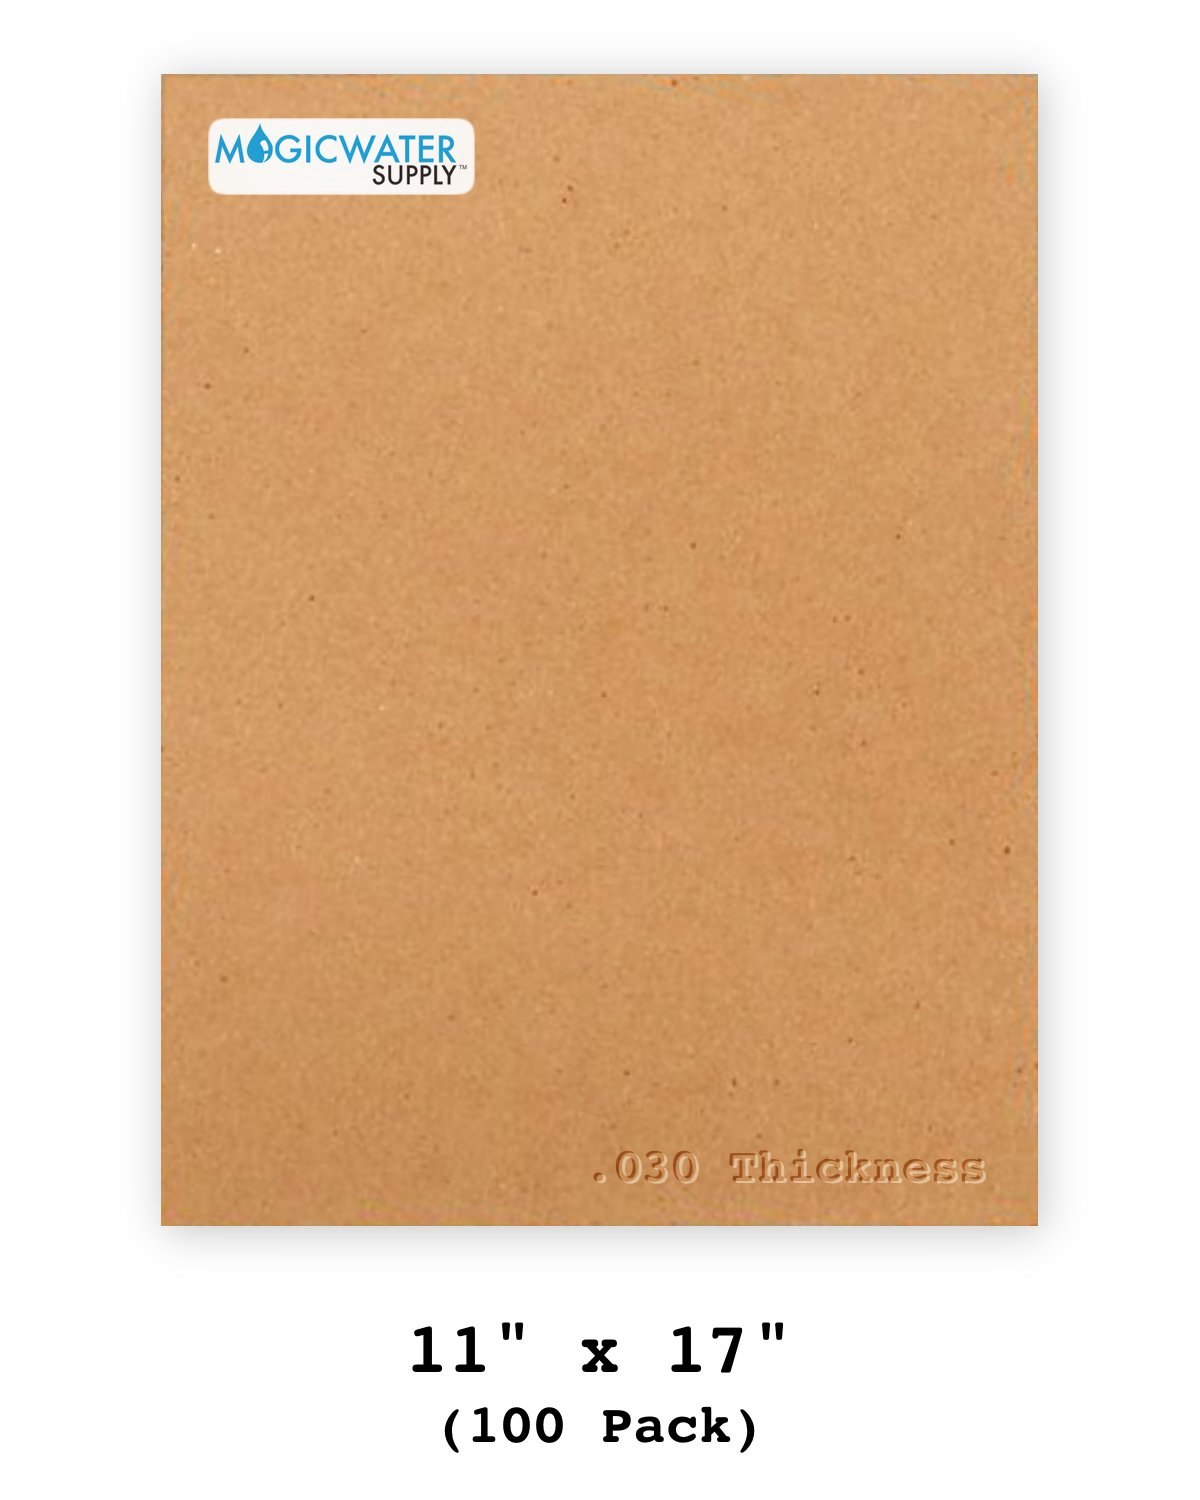 100 Chipboard Sheets 11 x 17 inch - 30pt (Point) Medium Weight Brown Kraft Cardboard for Scrapbooking & Picture Frame Backing (.030 Caliper Thick) Paper Board | MagicWater Supply